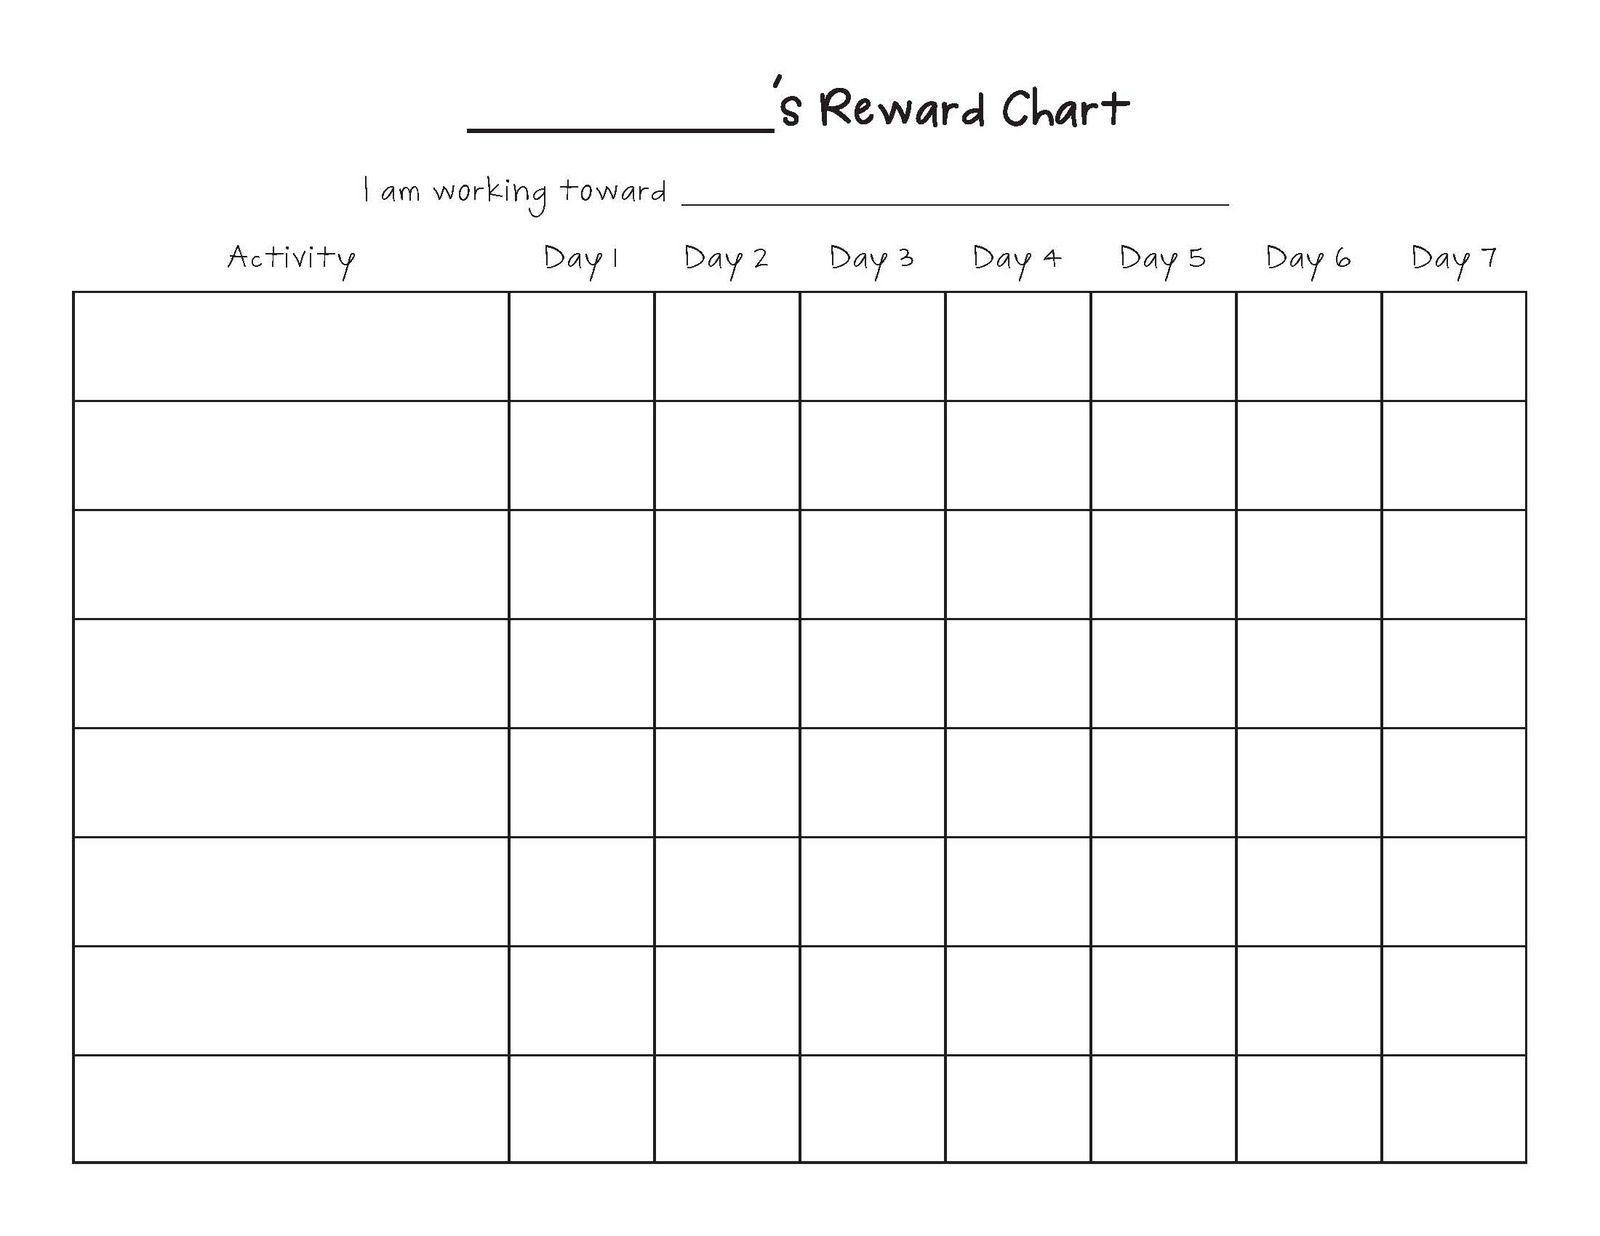 Monthly Calendar Behavior Chart In 2020 | Free Printable within Monthly Behavior Chart